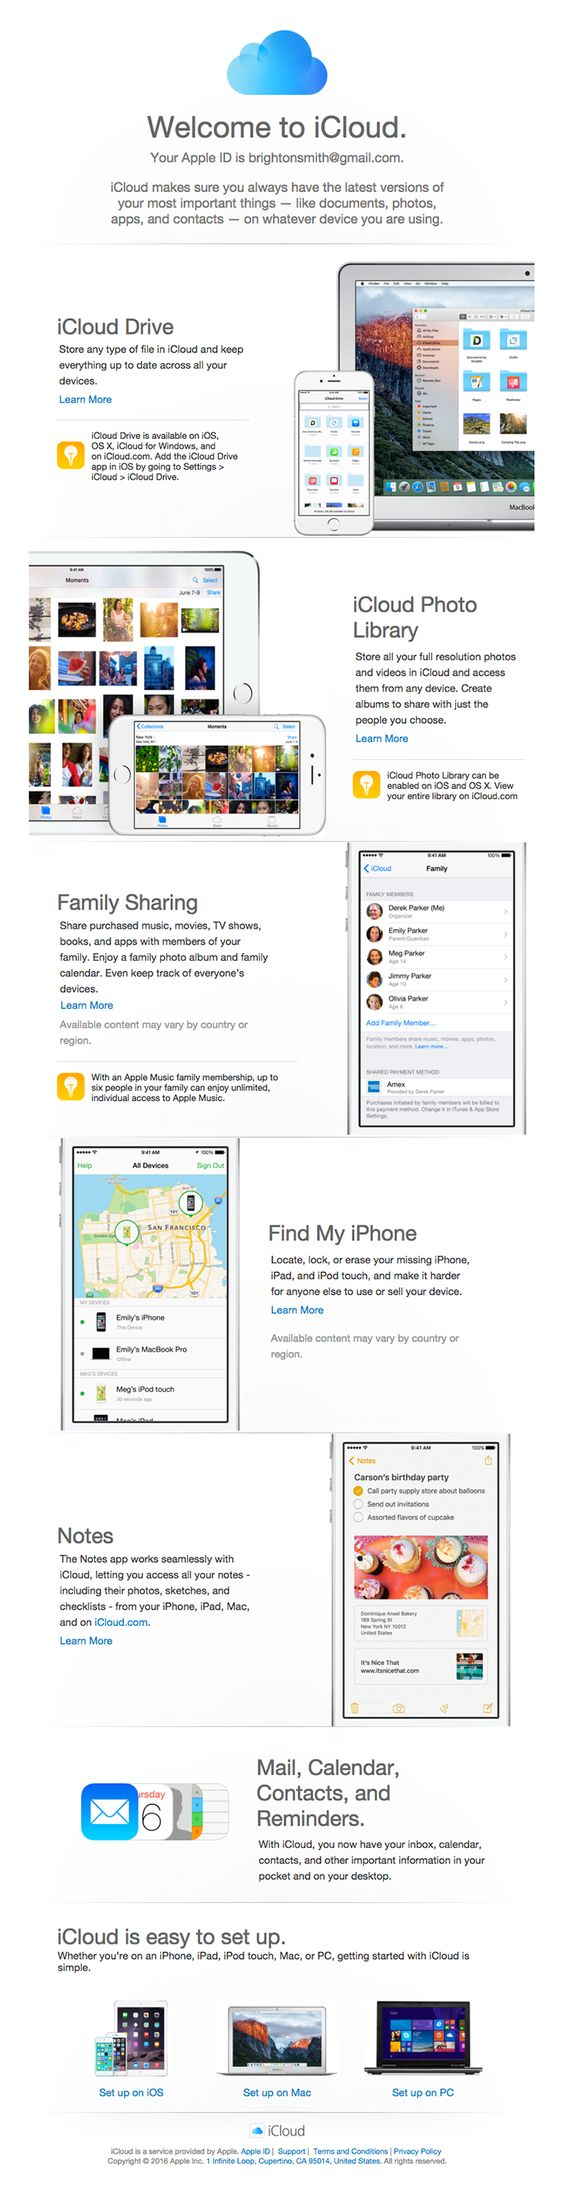 apple transactional email design good use of color